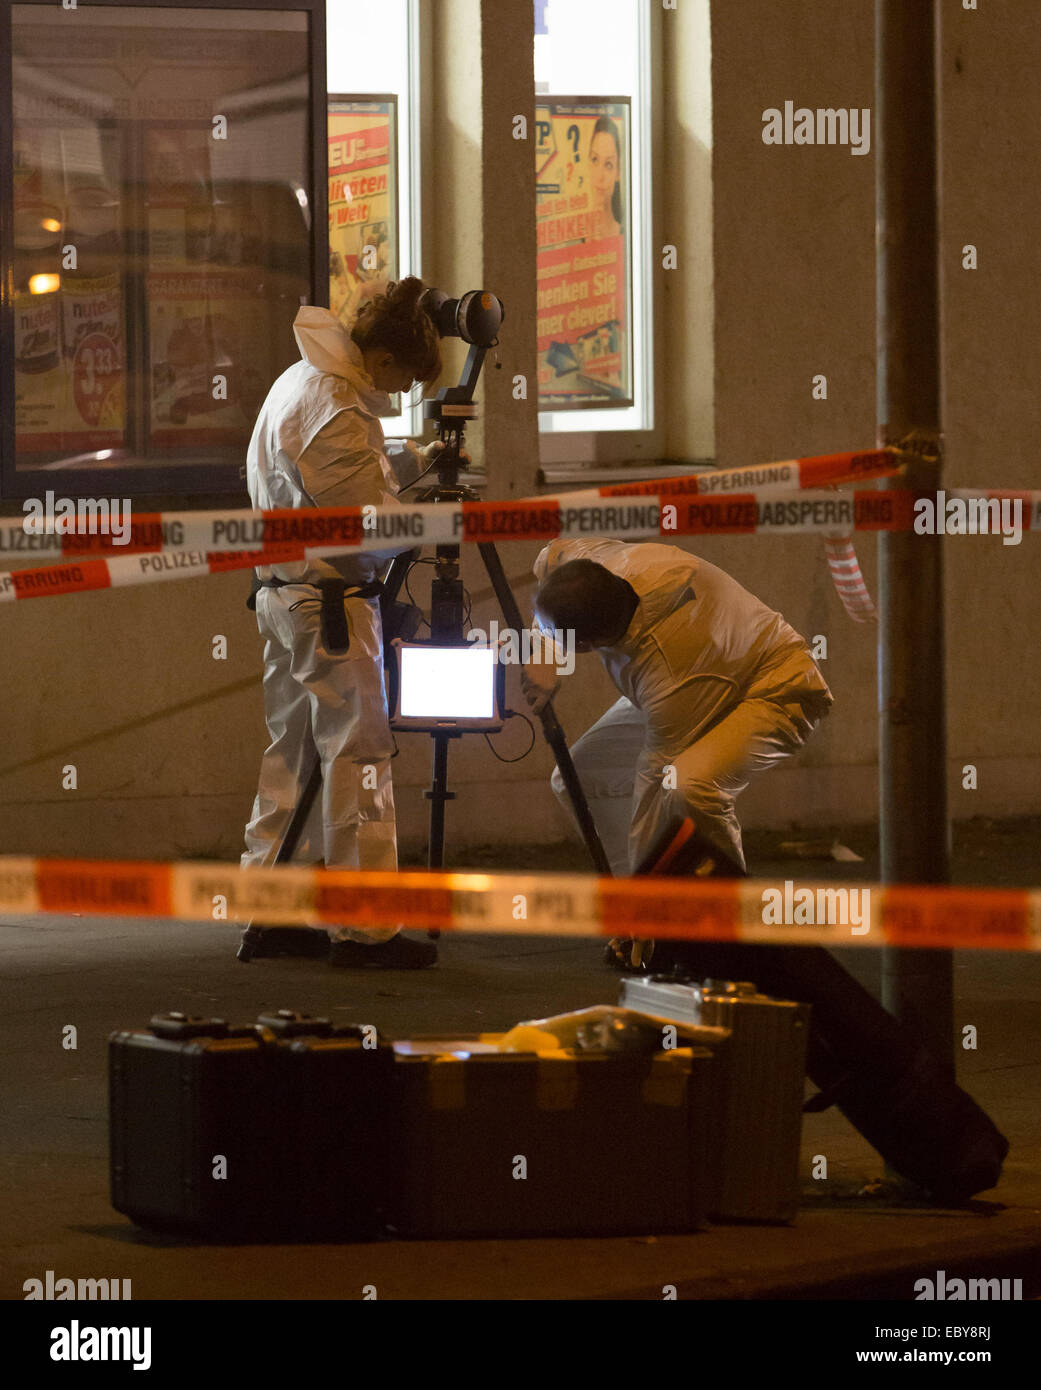 Hanover, Germany. 04th Dec, 2014. Police officers search for clues outside of a supermarket in Hanover, Germany, - Stock Image